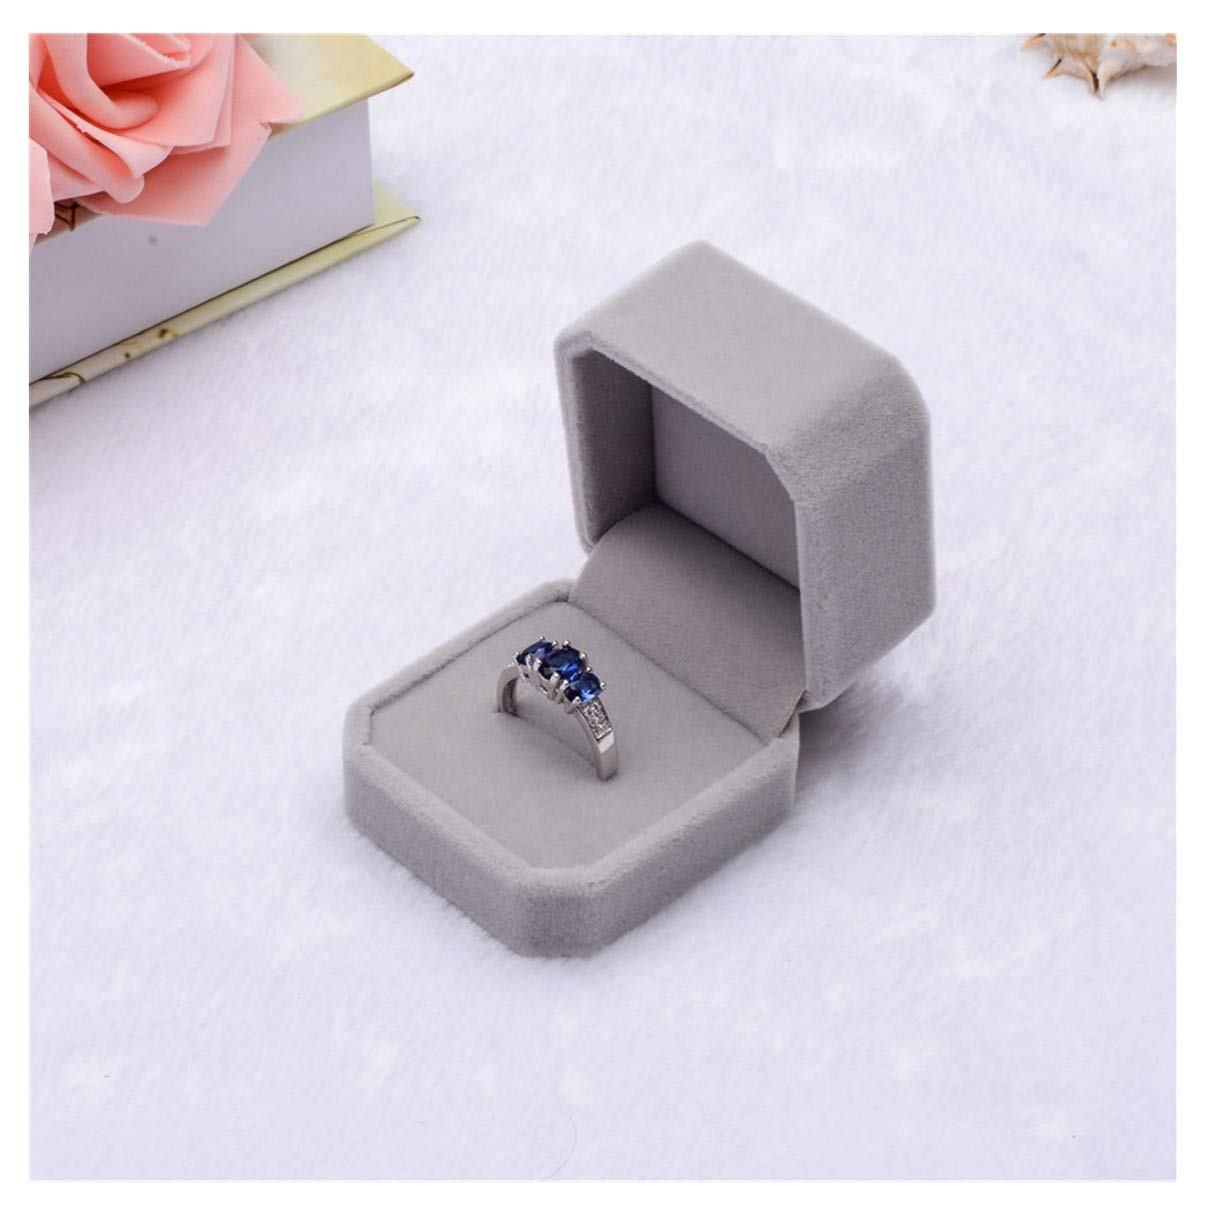 Midress Velvet Ring Box, Square Wedding Ring Box for Engagement Wedding Earring Ring Pendant Jewelry Display Box Gift (Gray)